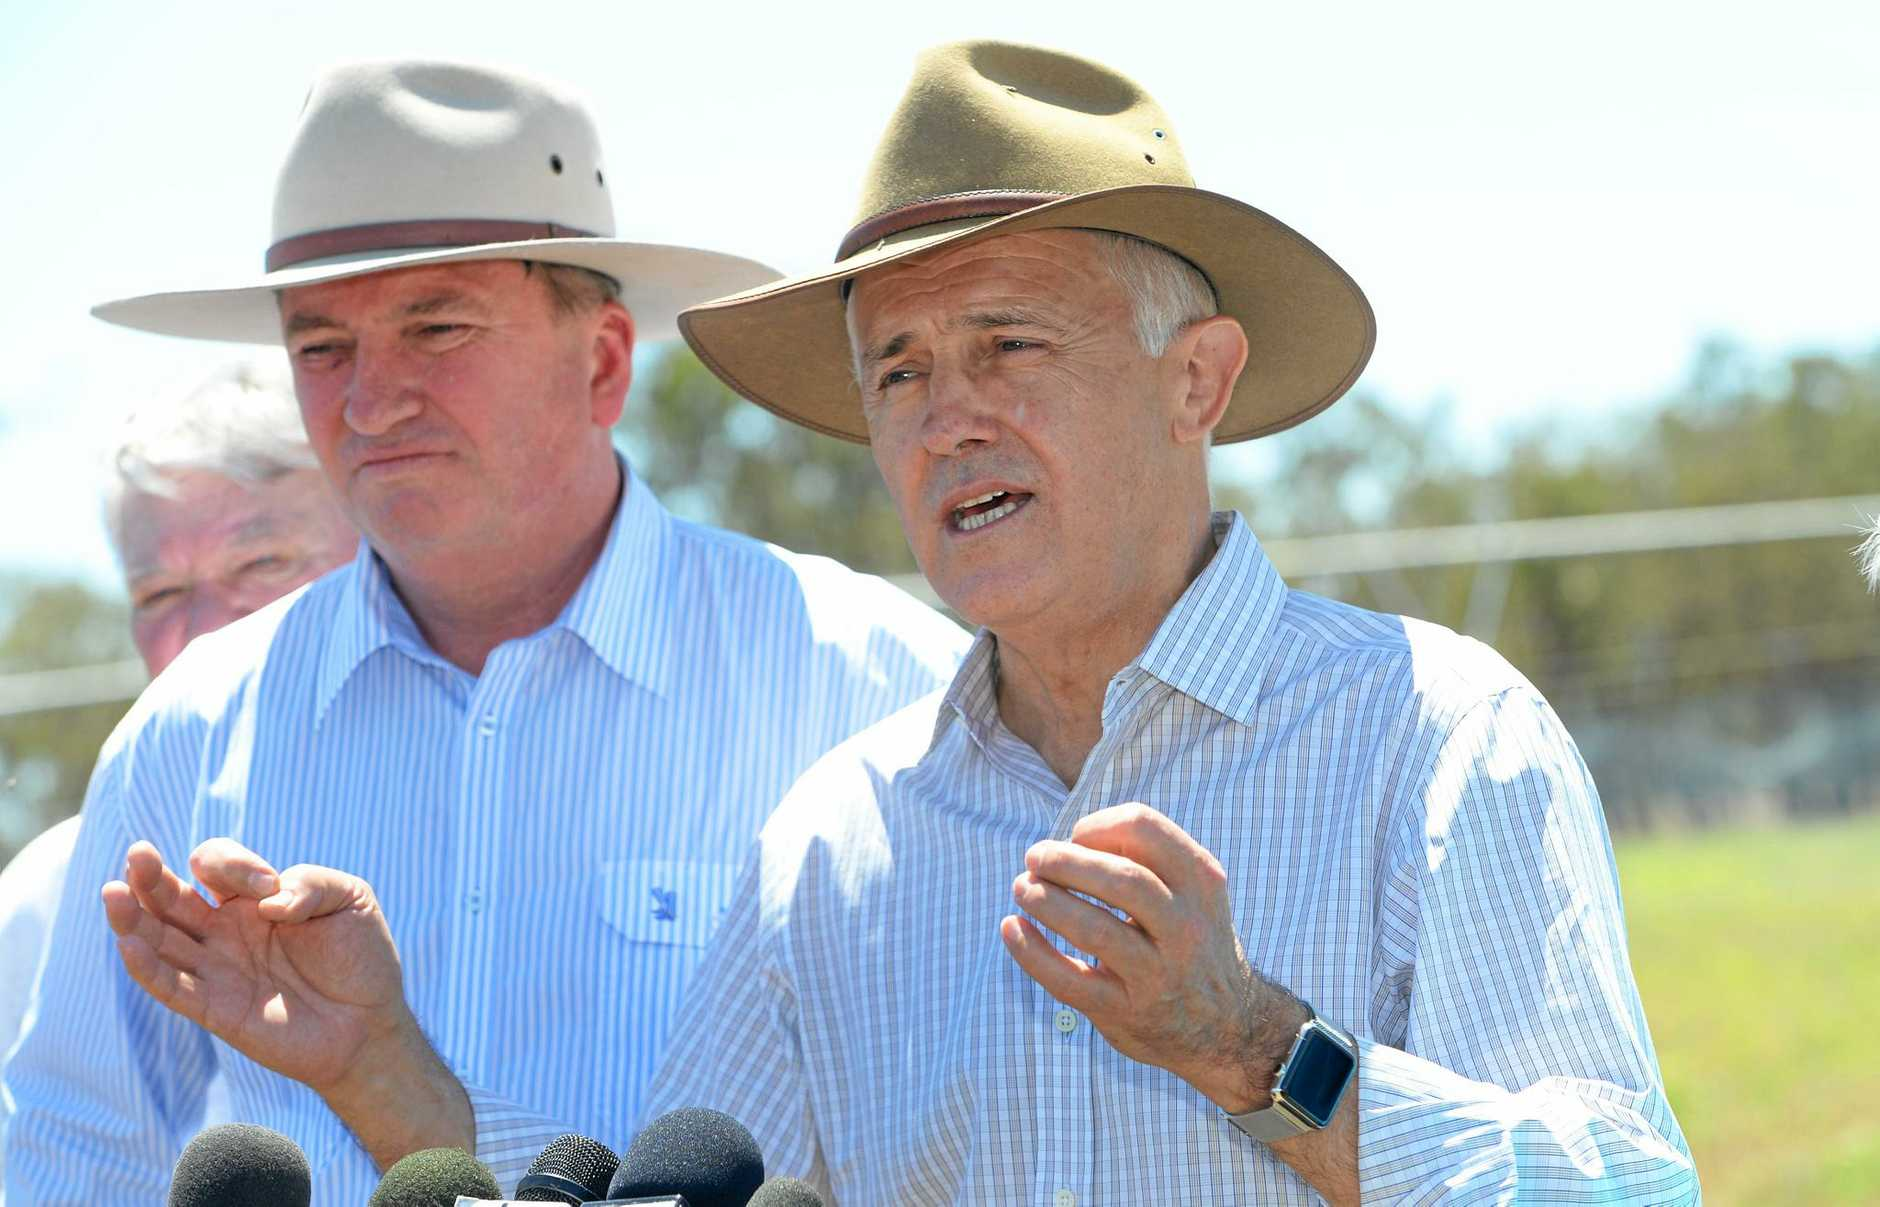 Prime Minister Malcolm Turnbull and Deputy Prime Minister Barnaby Joyce in Rockhampton last year to talk about infrastructure spending and the proposed Rookwood Weir.